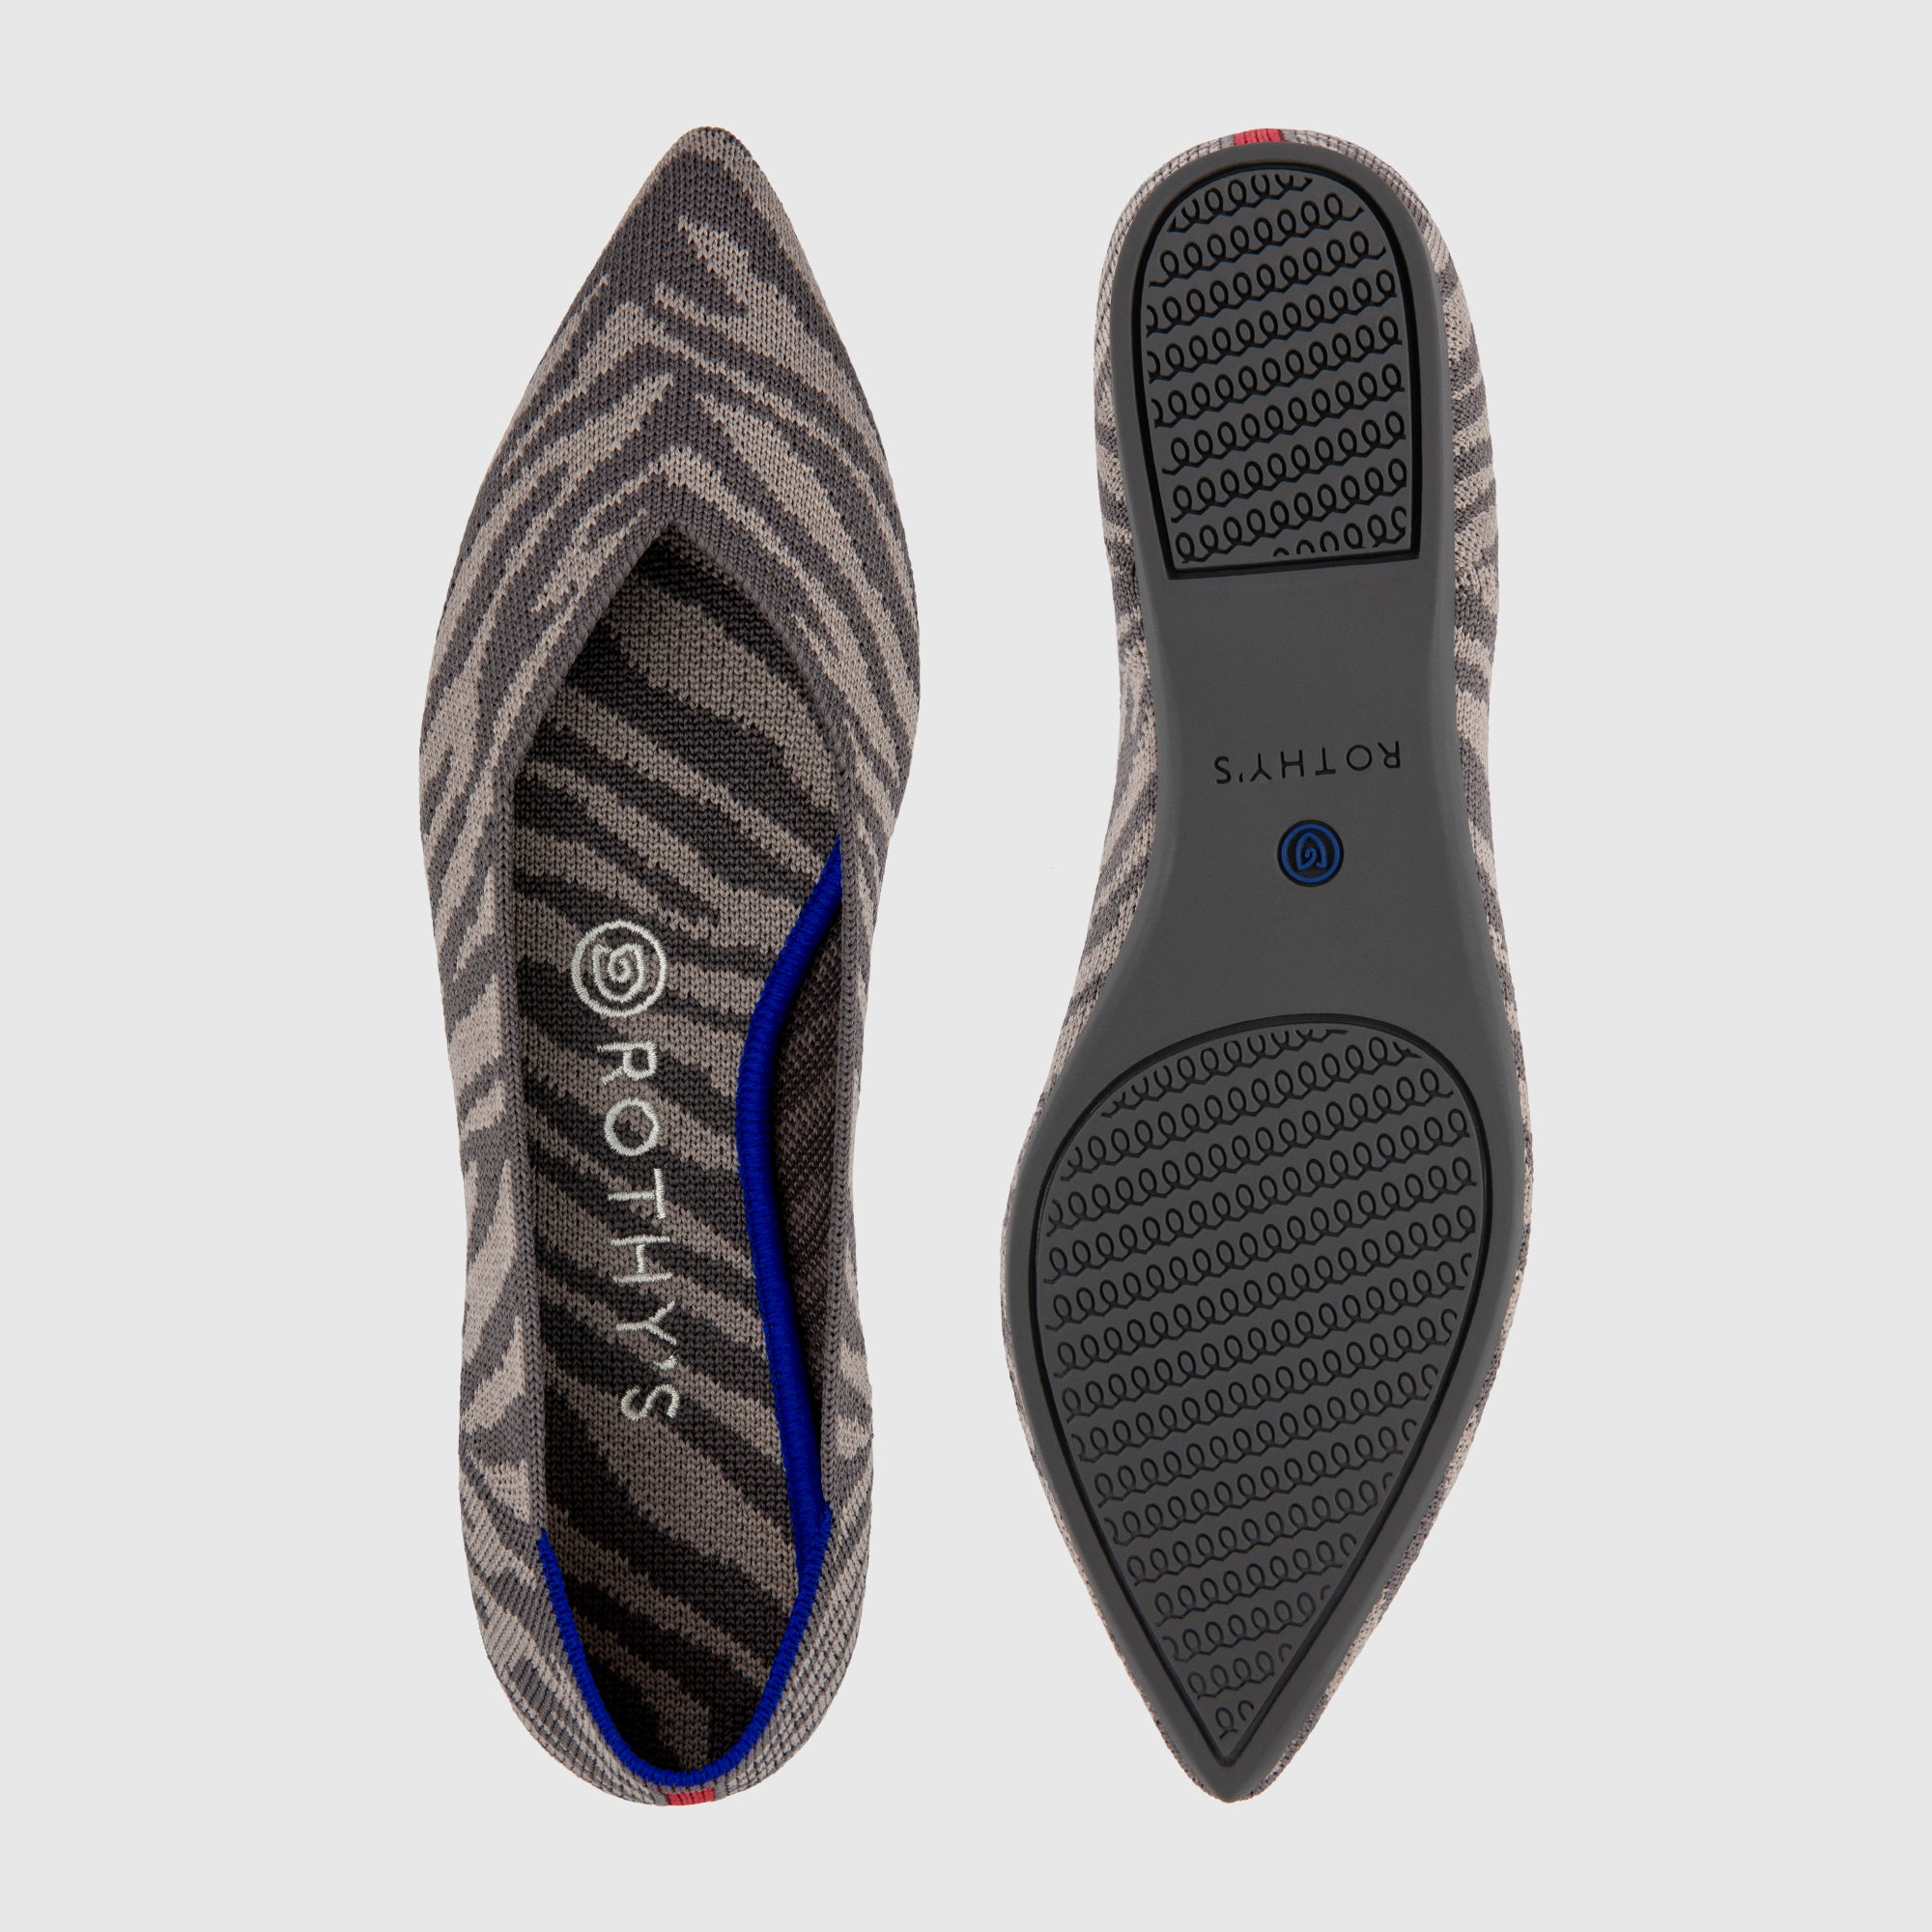 The Point shoe in Grey Zebra shown from the top alongside a view of the sole.